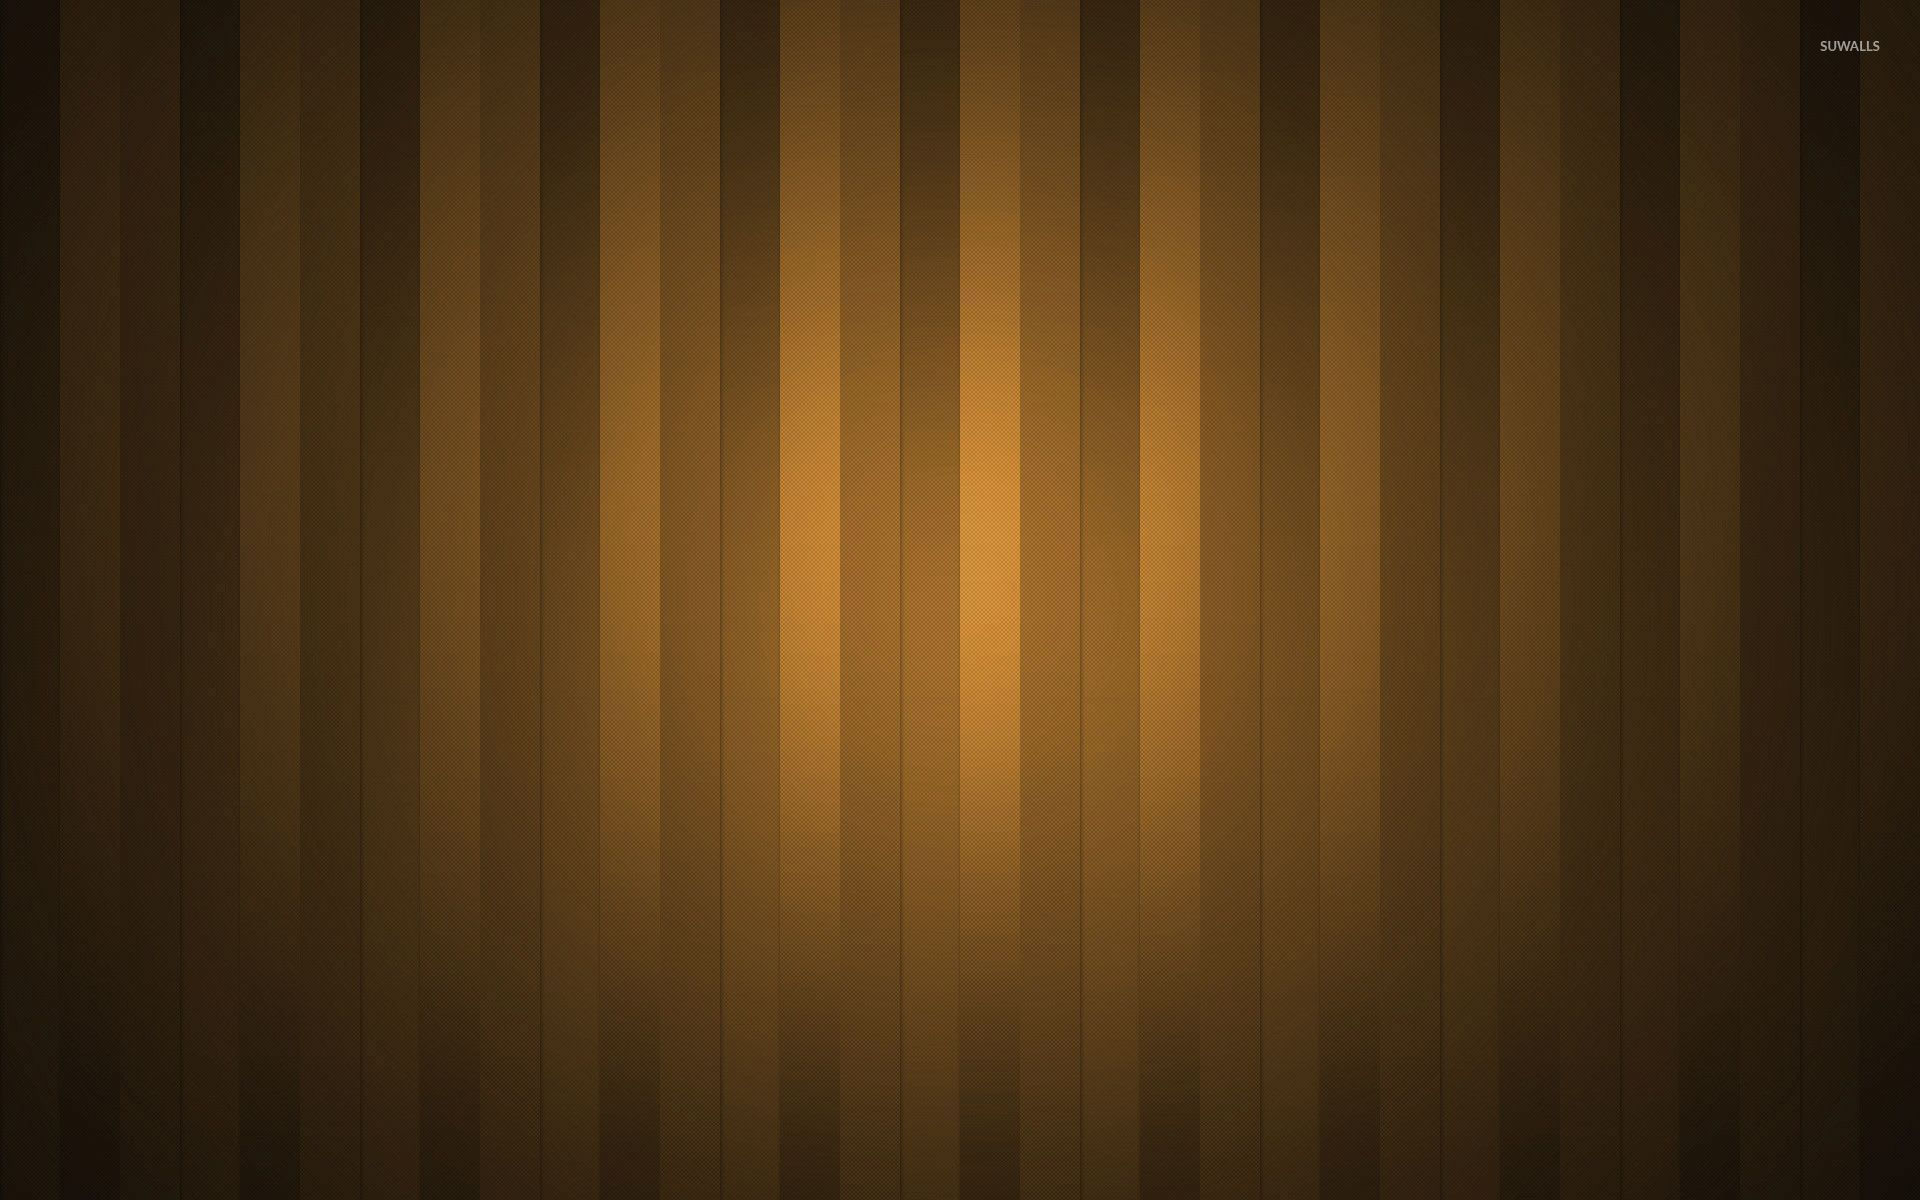 wallpaper 3840x2160 abstract brown - photo #3